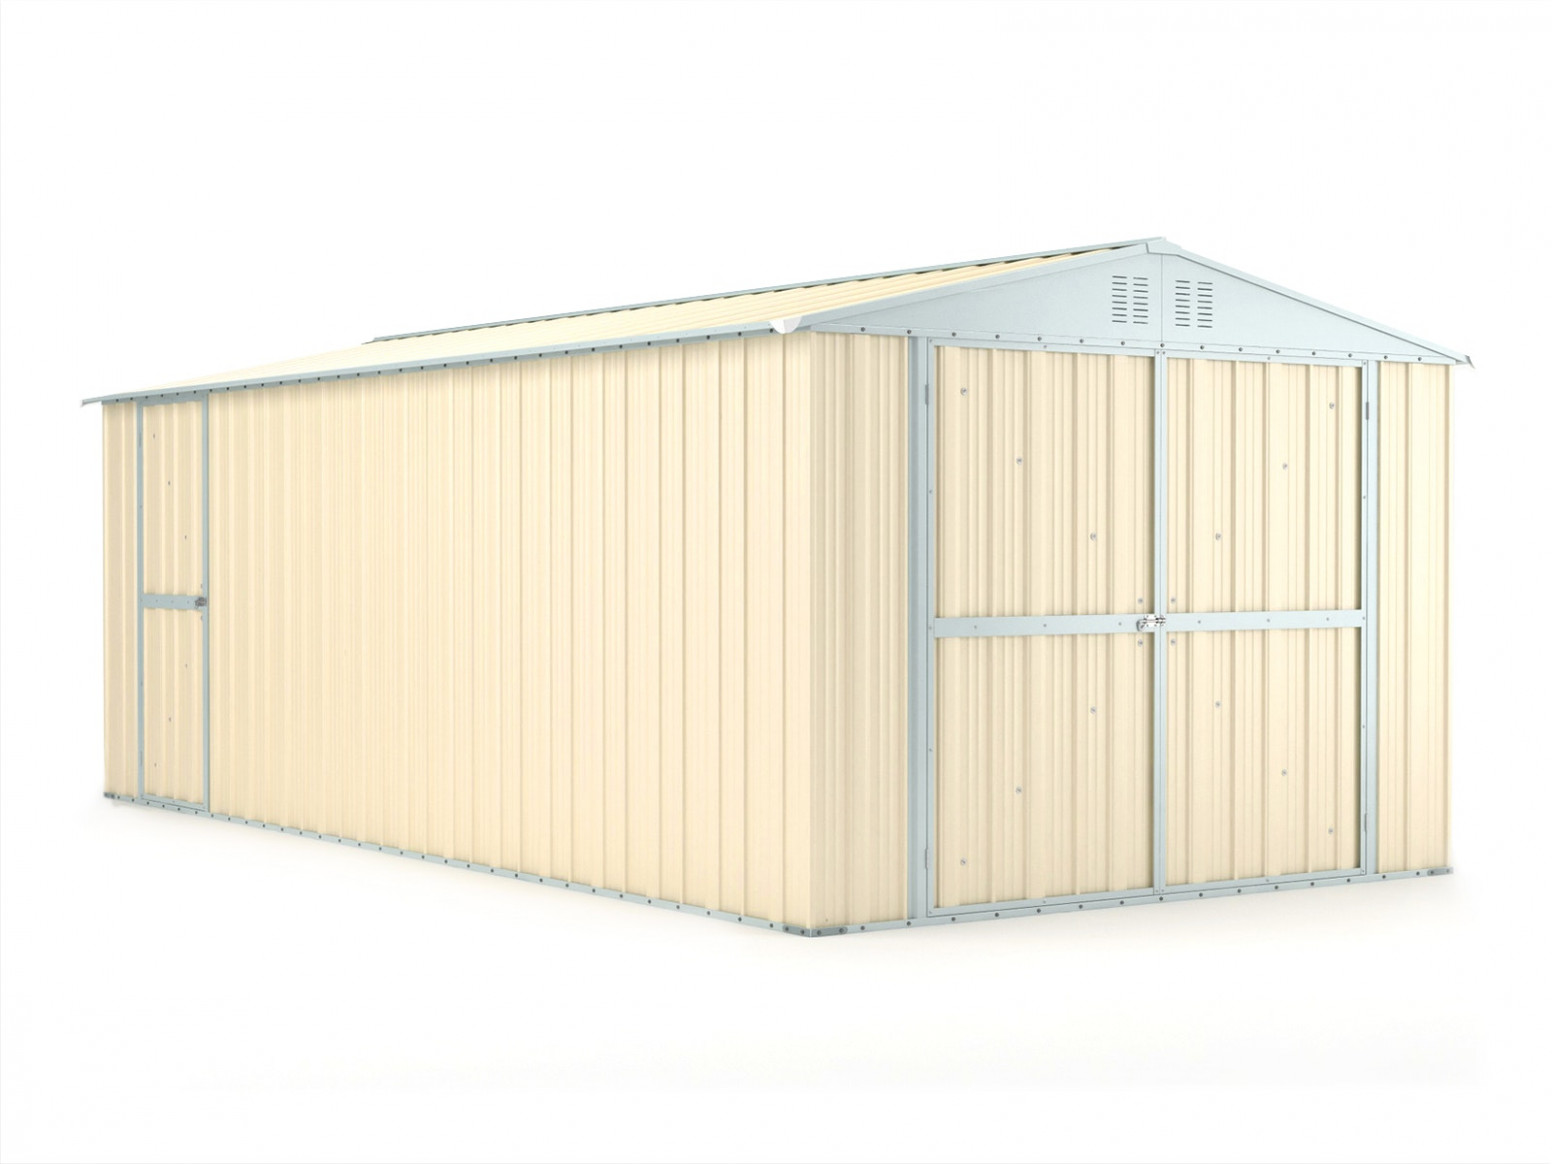 Workshop Garage 13.13m X 13.13m X 13